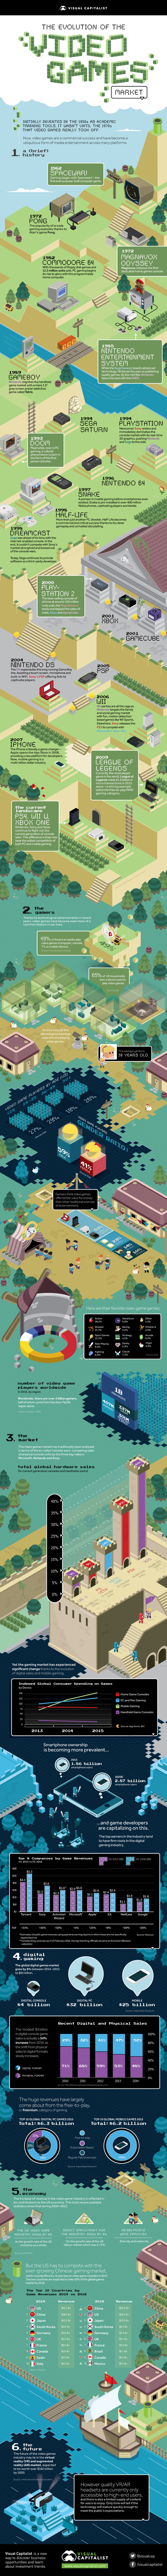 video-games-market-infographic-fin